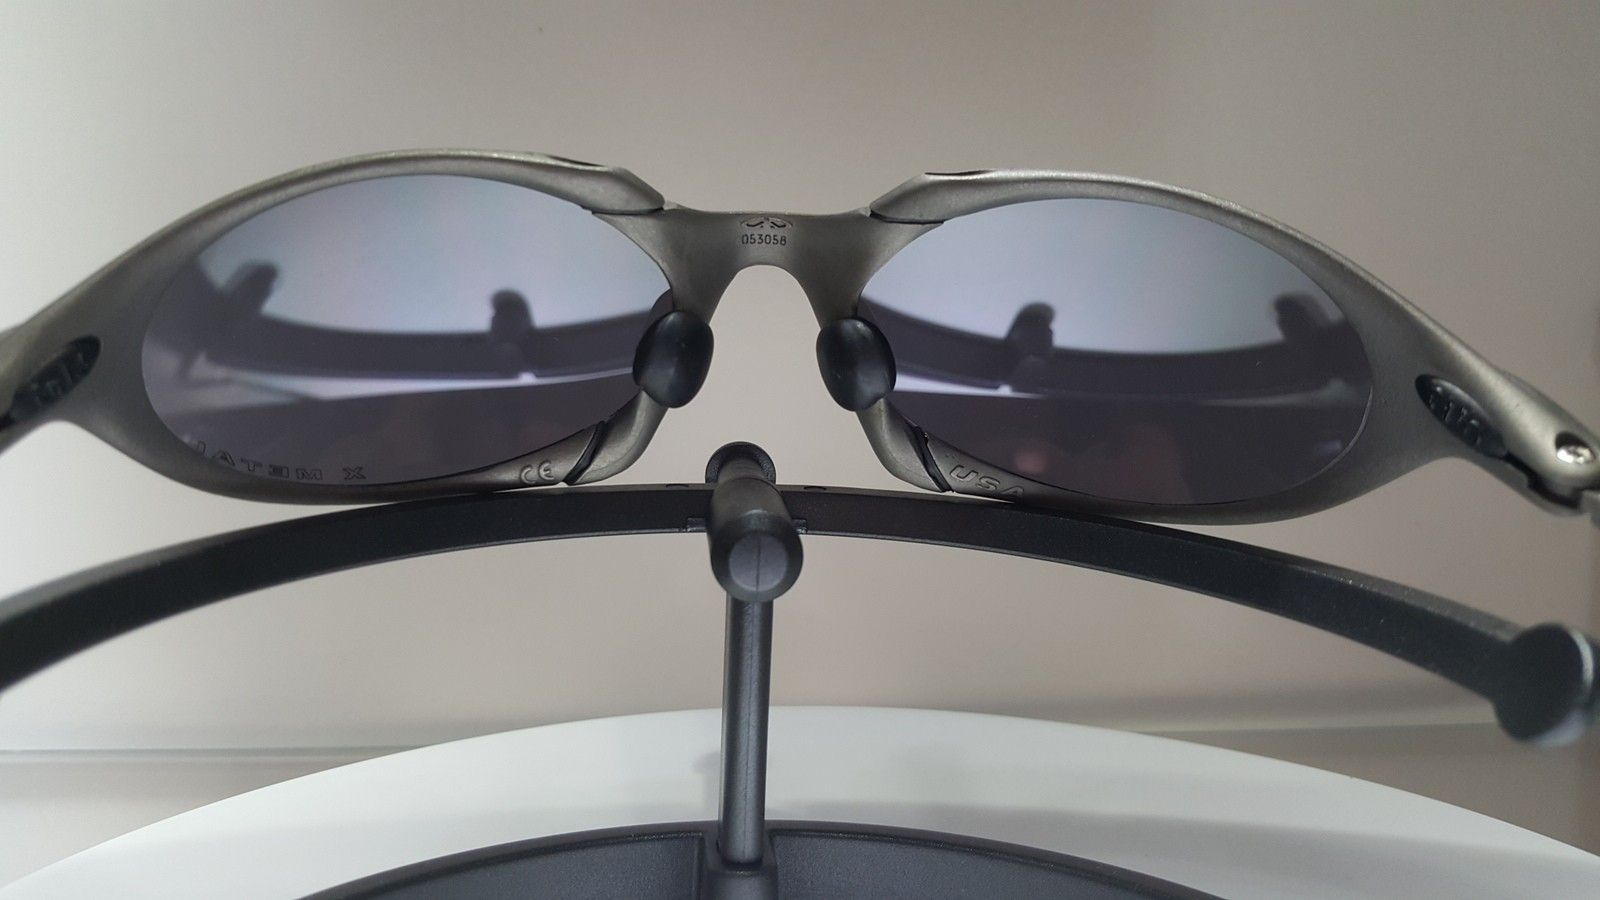 X metal Romeo 1(brand new OEM lenses) - 20151009_075051.jpg